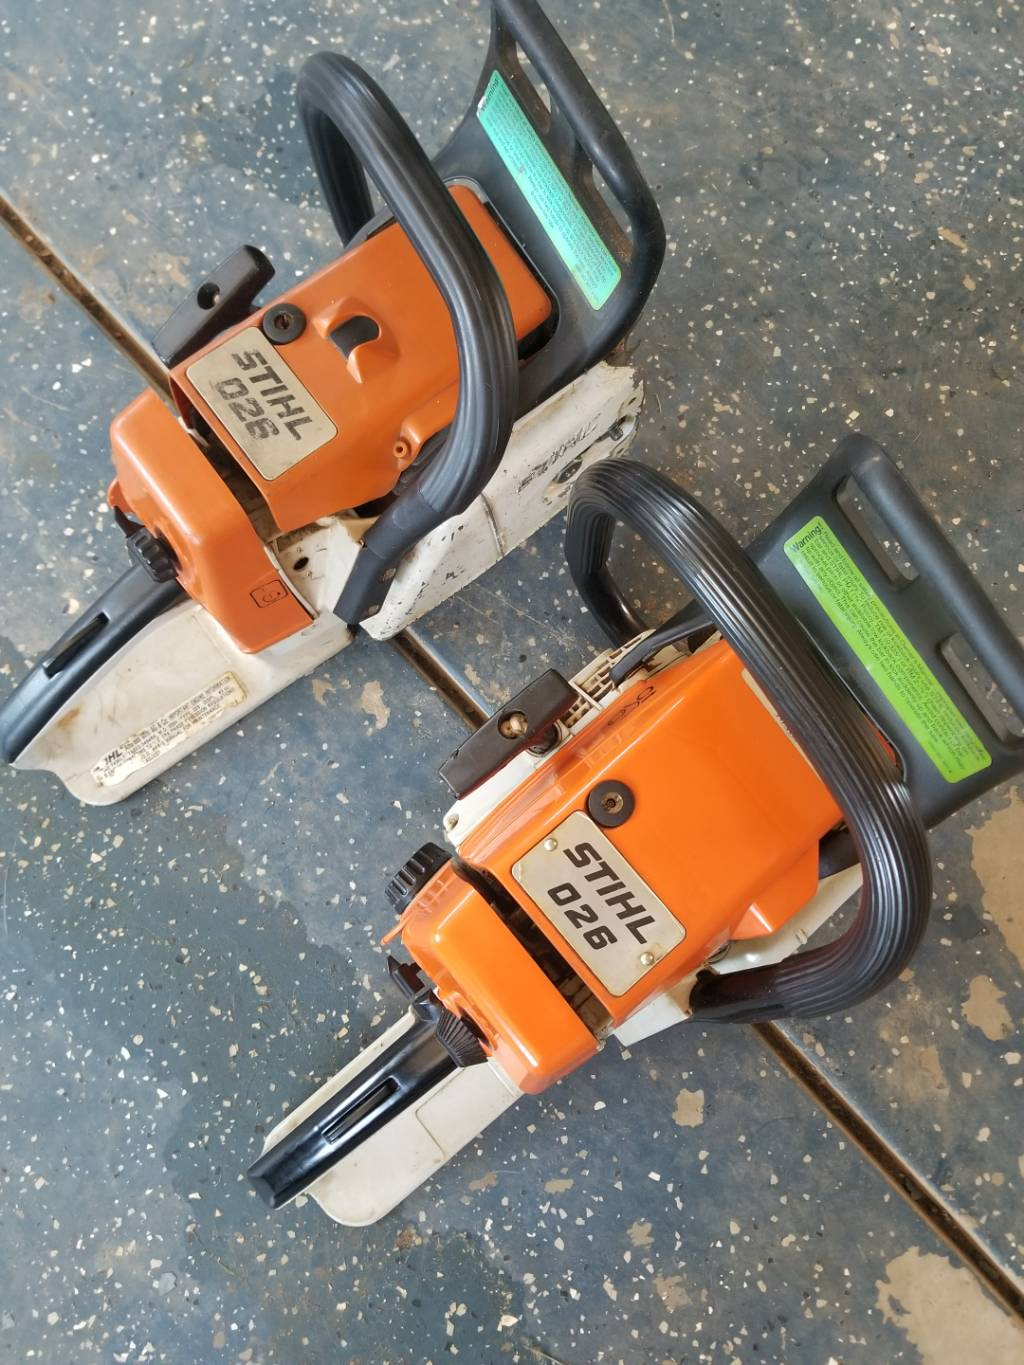 SELLING - Clean stihl 026 for sale!! | Outdoor Power Equipment Forum